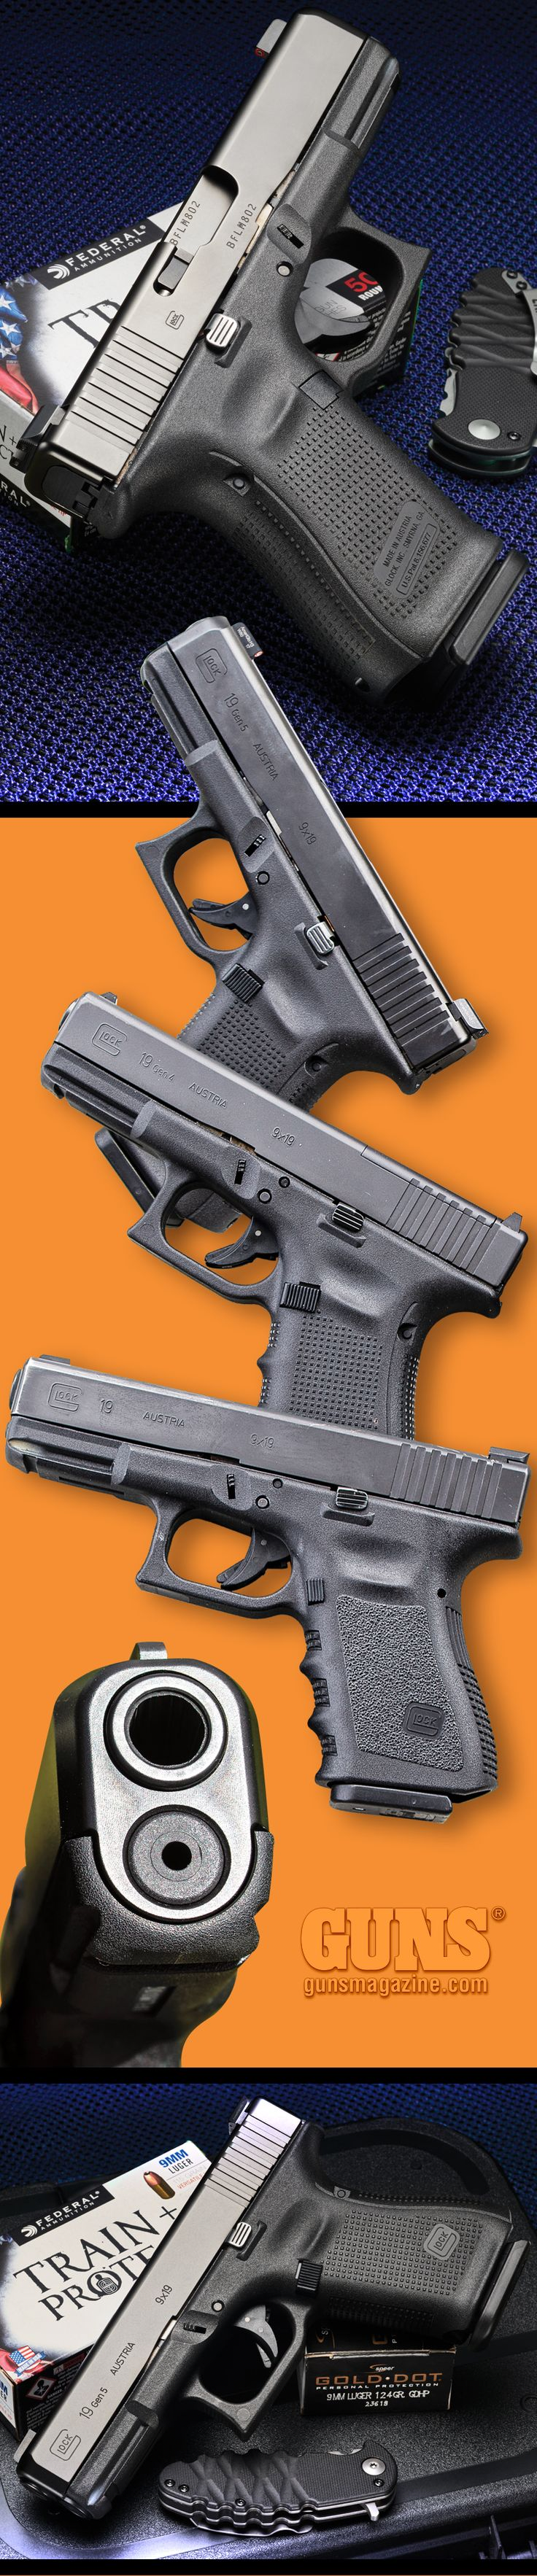 A Generational Advance | By Massad Ayoob | The Gen5 Glock 19 Arrives With Very Worthwhile Enhancements. | There has been much discussion about the new Gen5 Glock 9mm pistols. Let's take a look at the features ... | © GUNS Magazine 2018